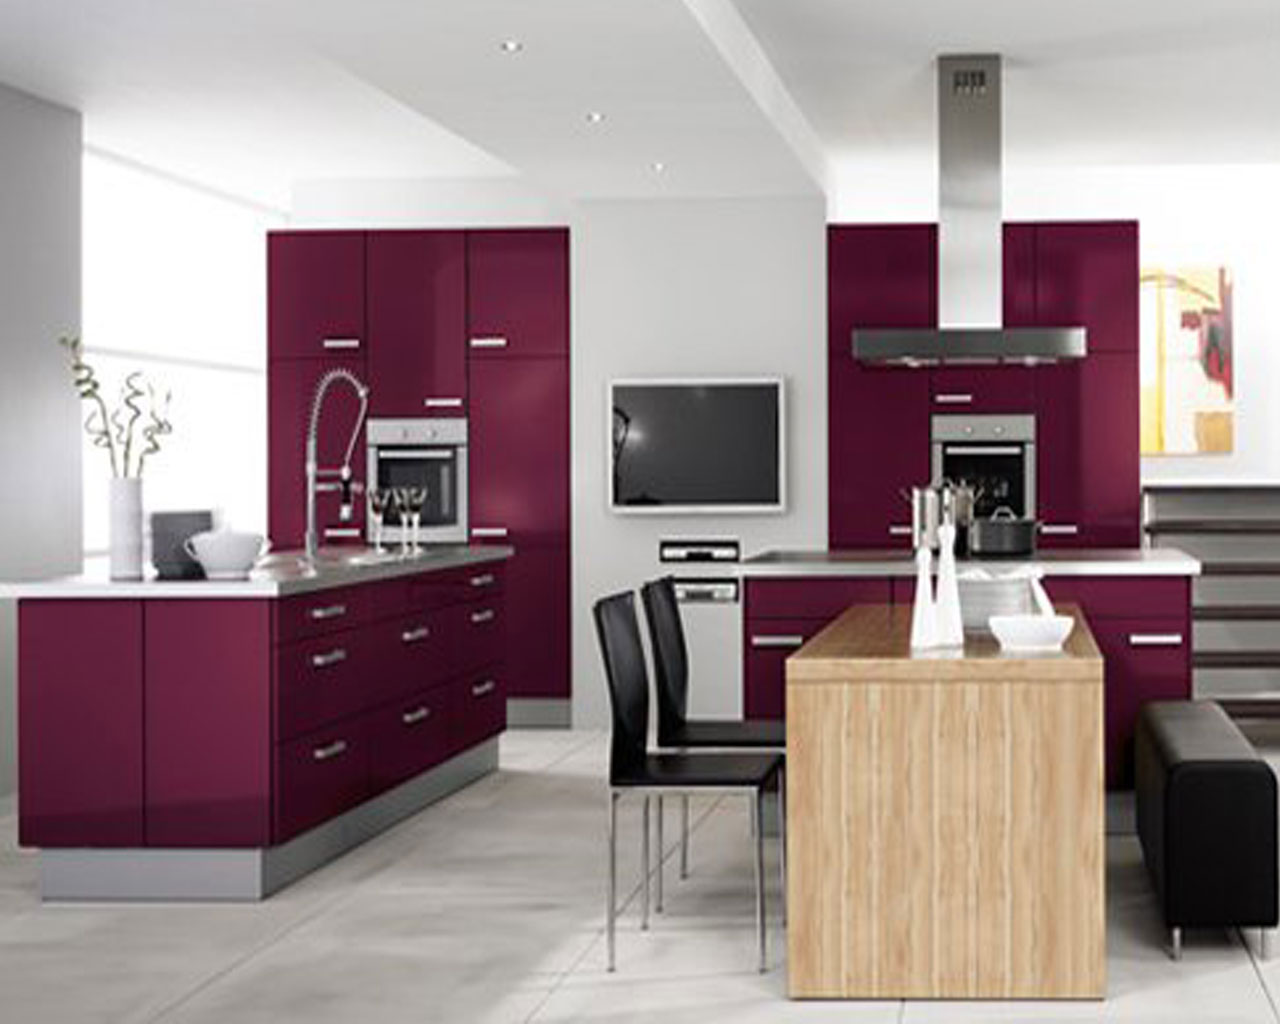 Furniture design Kitchen room furniture design